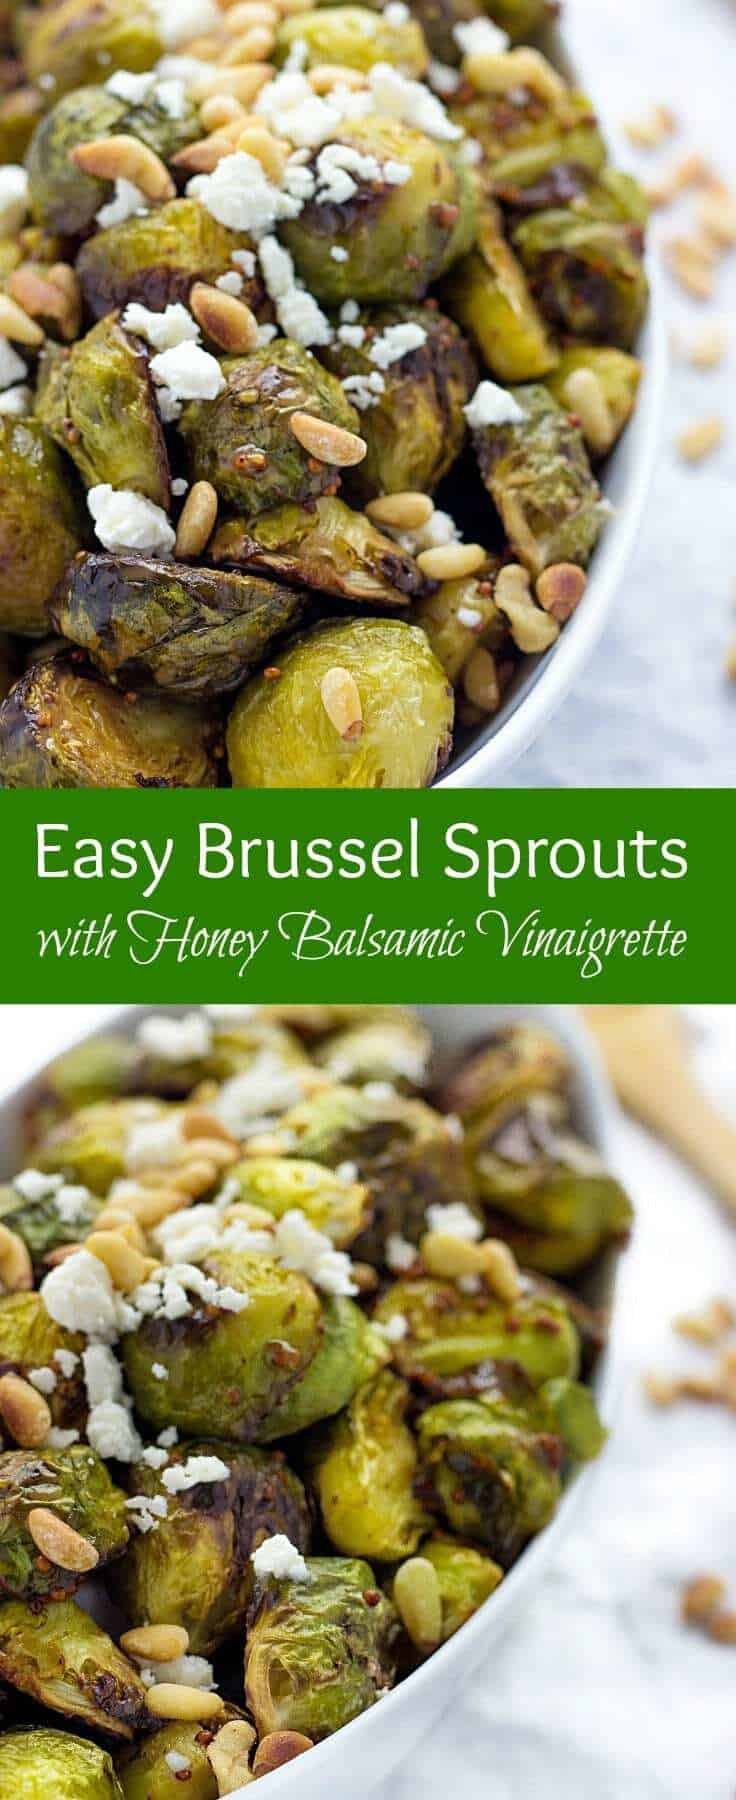 Brussel Sprout Recipes Honey Balsamic